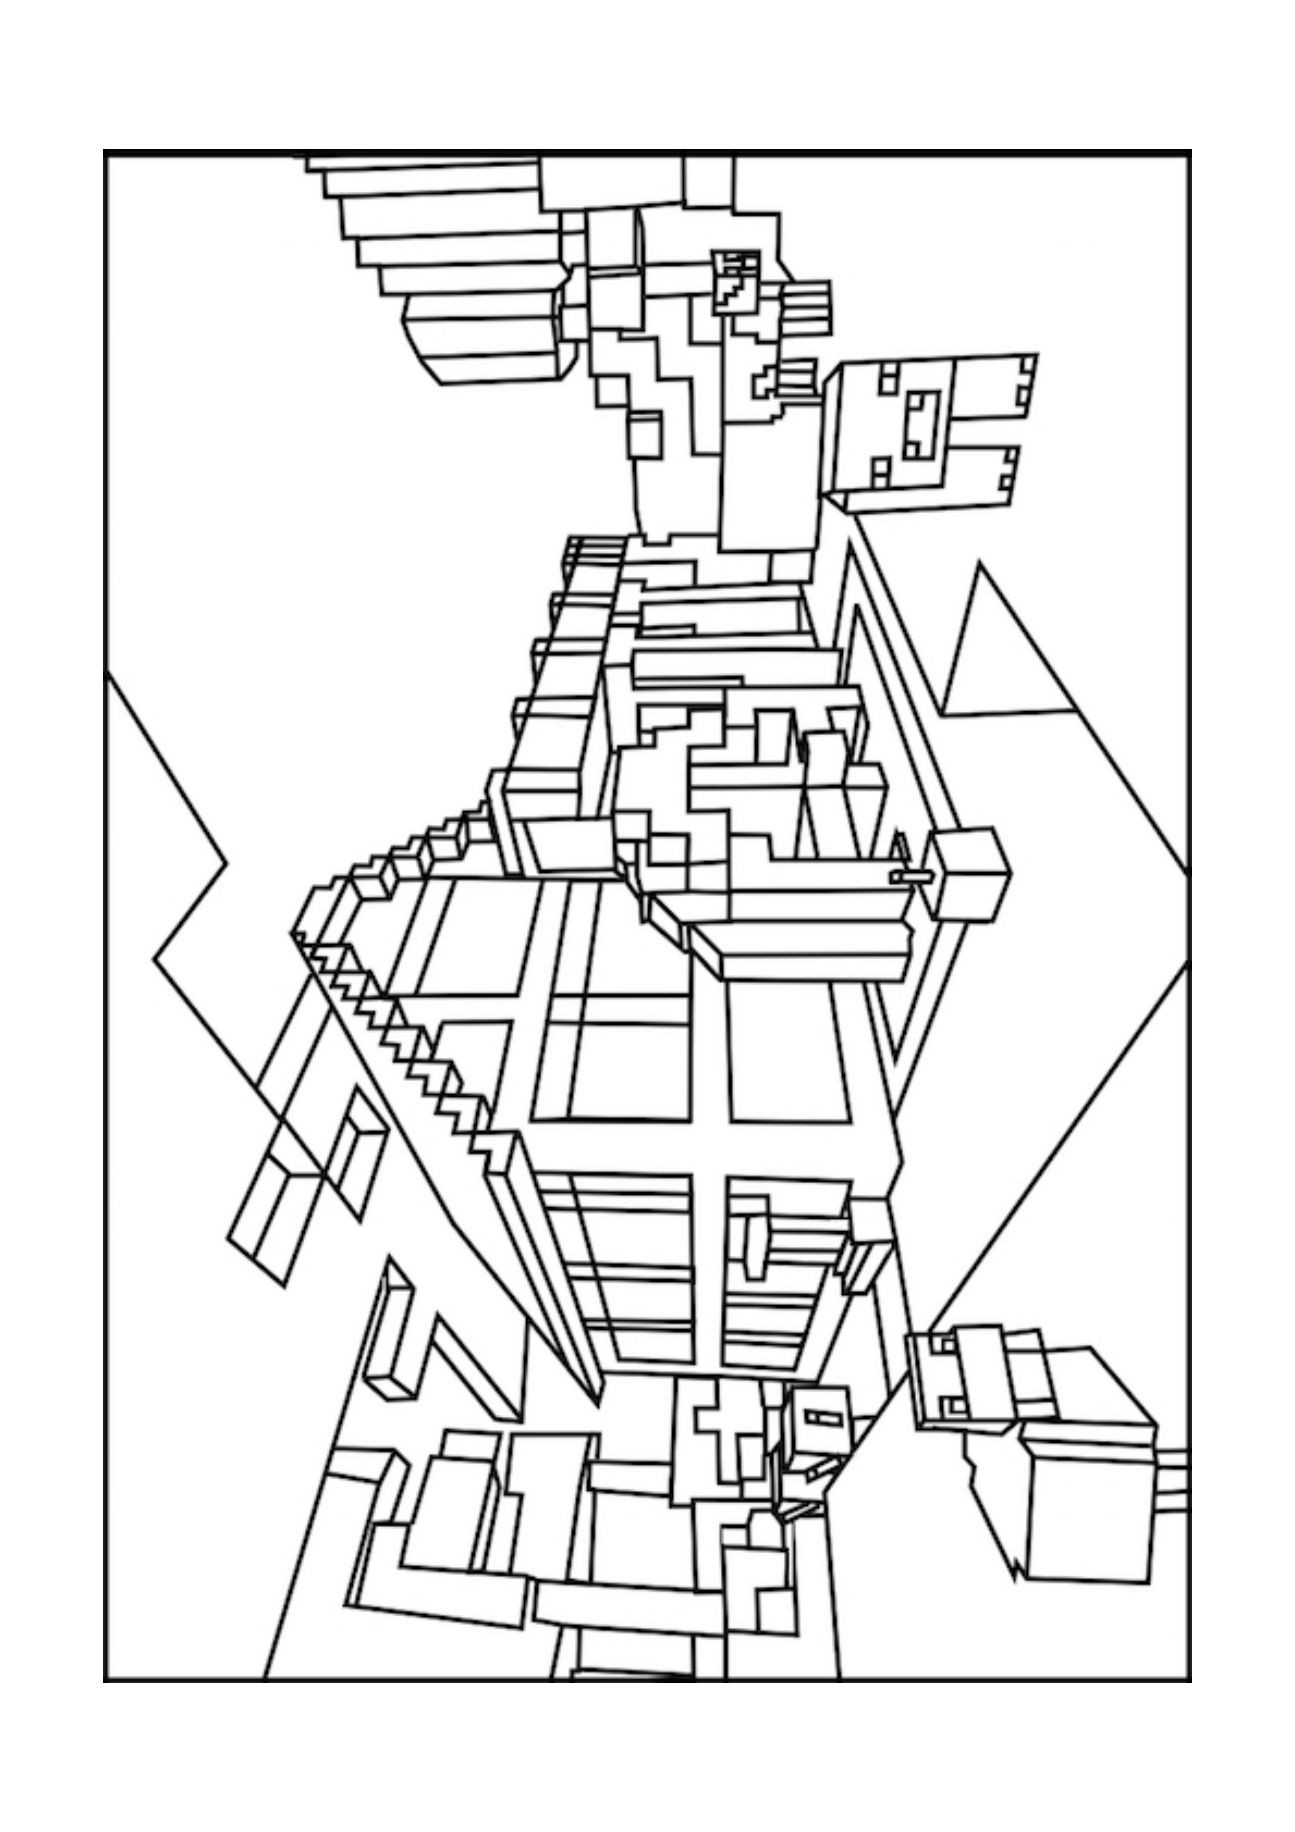 mine craft coloring pages minecraft coloring pages enderman at getcoloringscom coloring mine craft pages